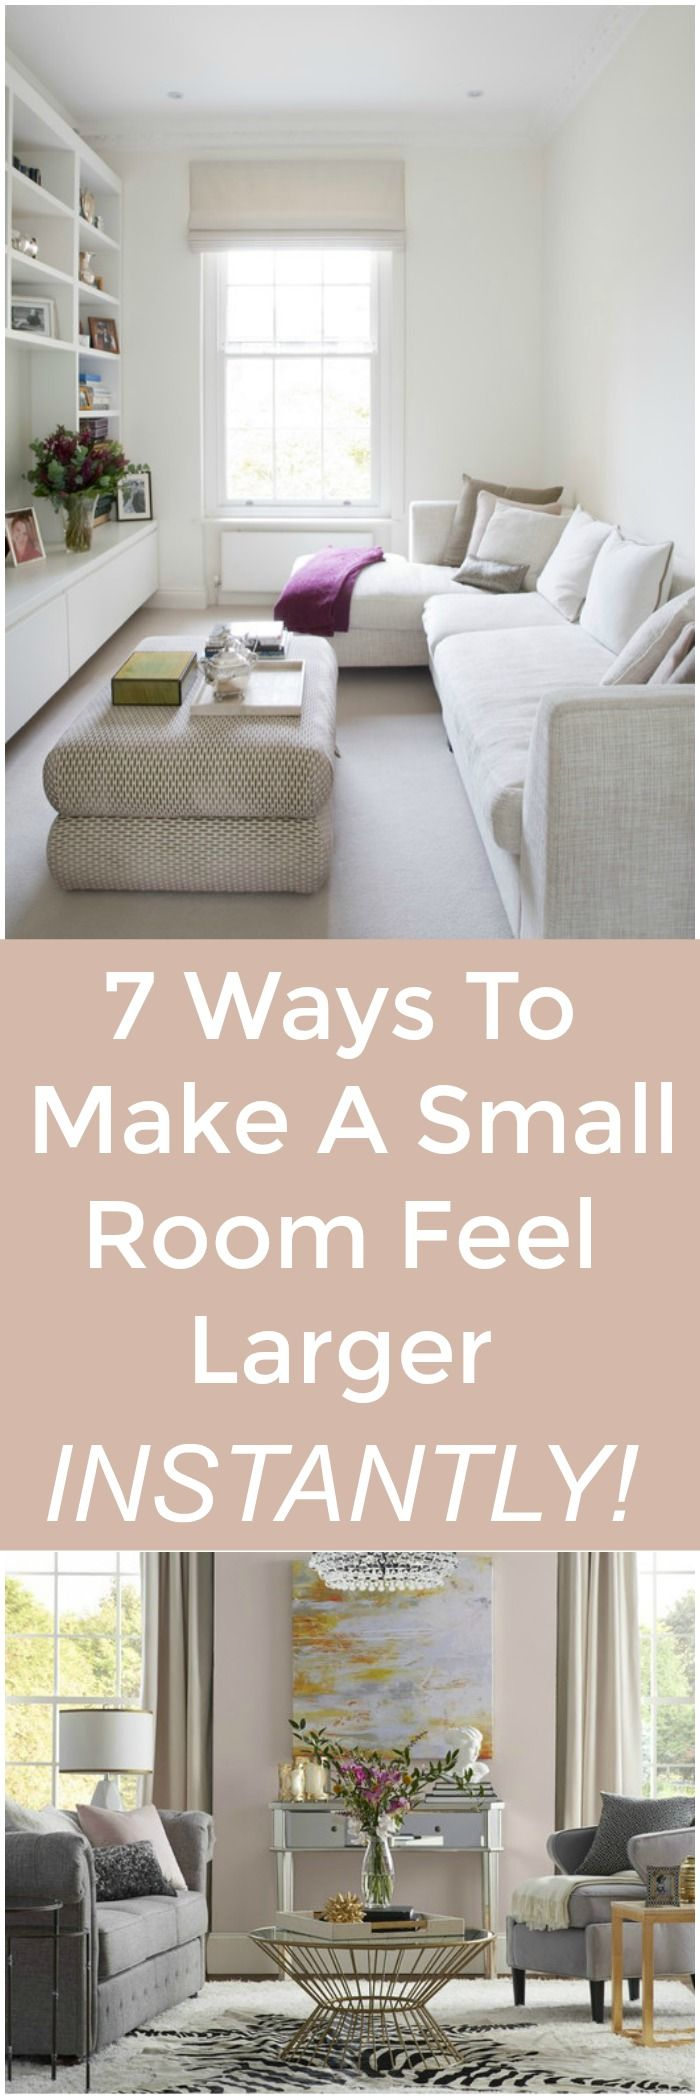 Best 7 Ways To Make A Small Room Feel Larger Instantly Small 640 x 480